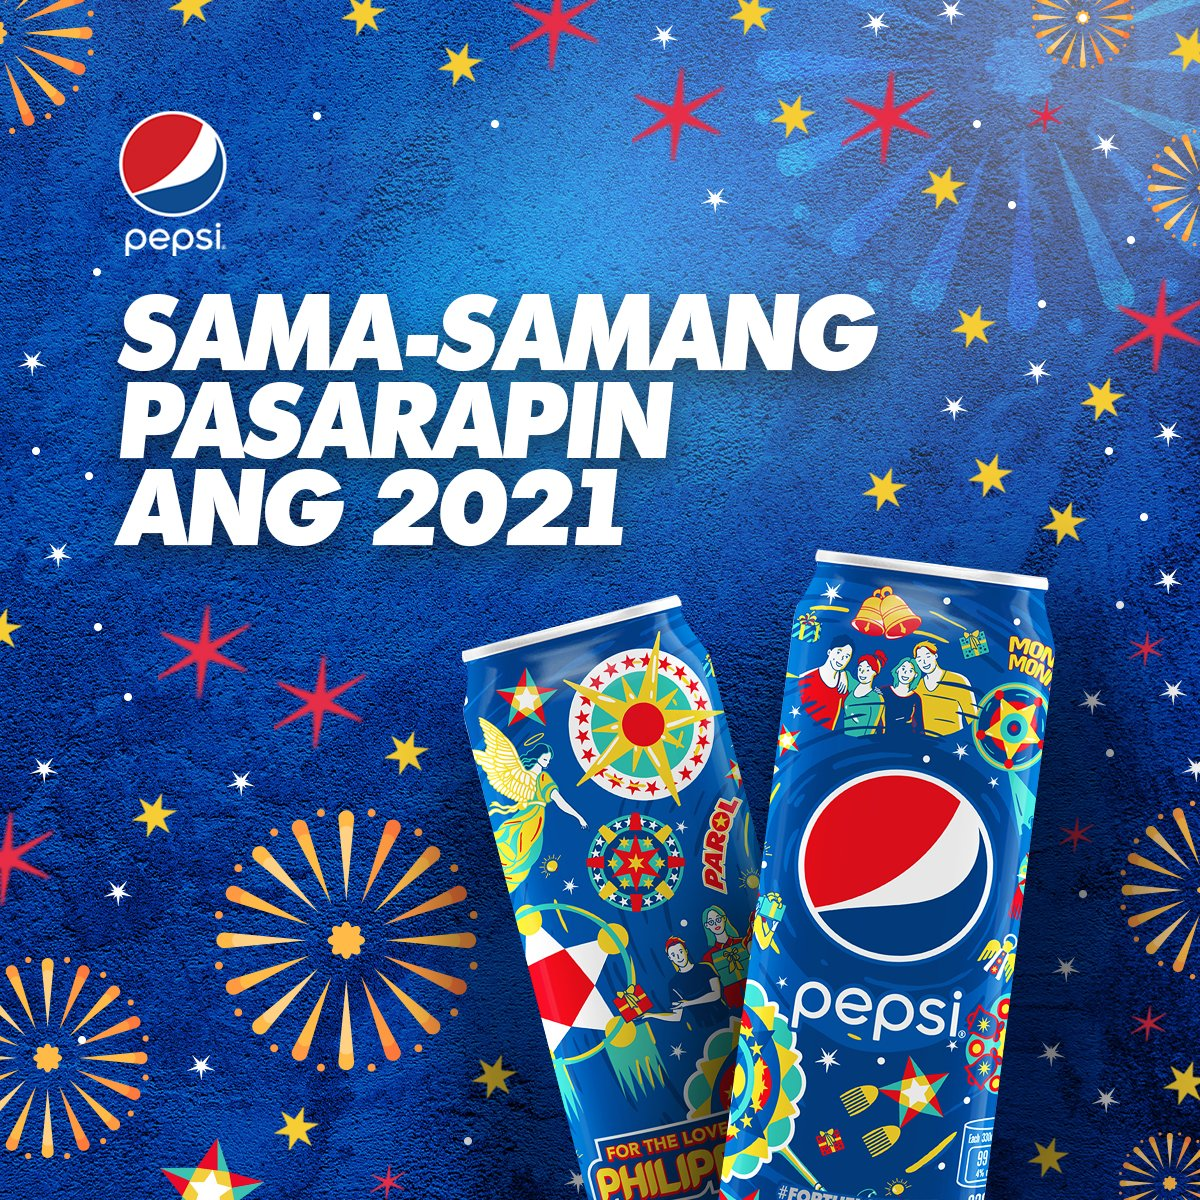 Congrats, we survived 2020! Pasarapin ang bagong taon with Pepsi. Cheers! #PepsiLovesChristmas